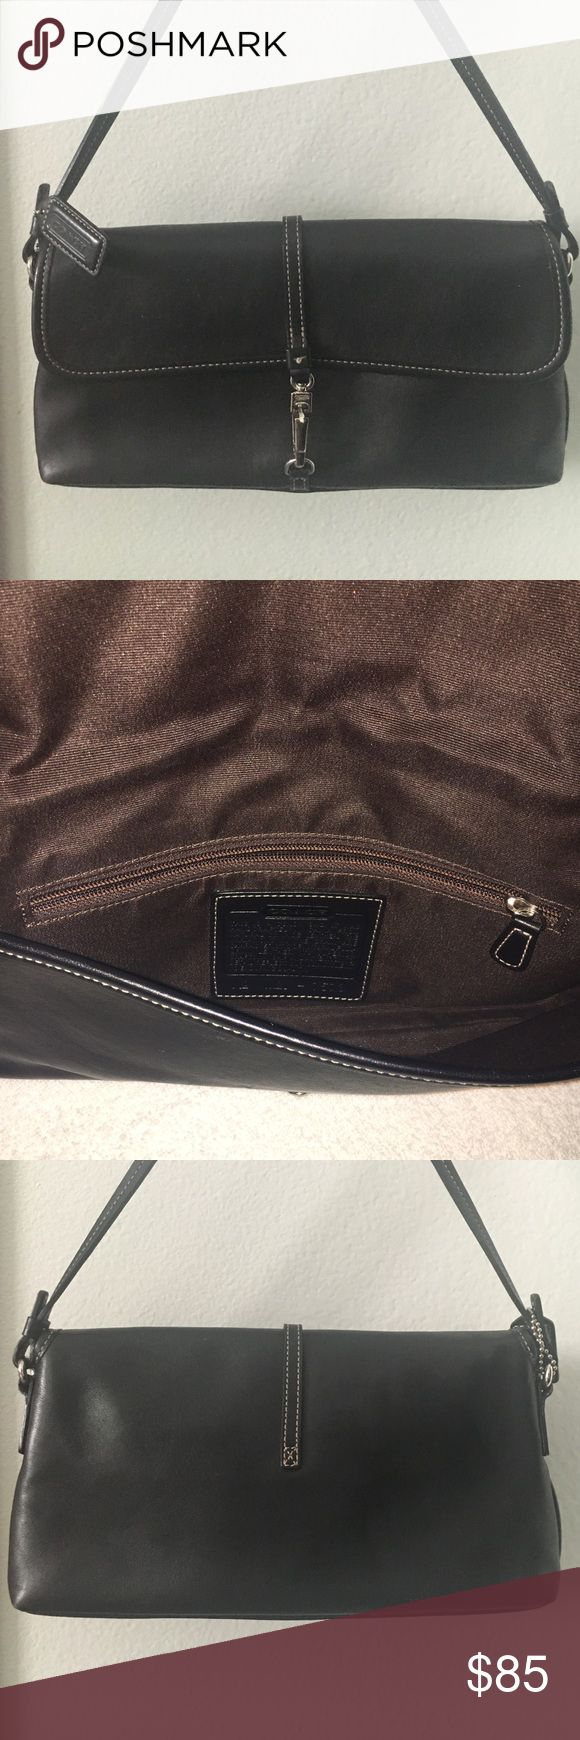 Coach Leather Clutch/Shoulder Bag Coach Black Cowhide Leather Bag with silver hardware. Could be used as a Clutch or a Shoulder Bag. Measures 10.5 x 5 inches. 7 inch strap. Gently used. No marks inside or outside of the bag. Coach Bags Shoulder Bags